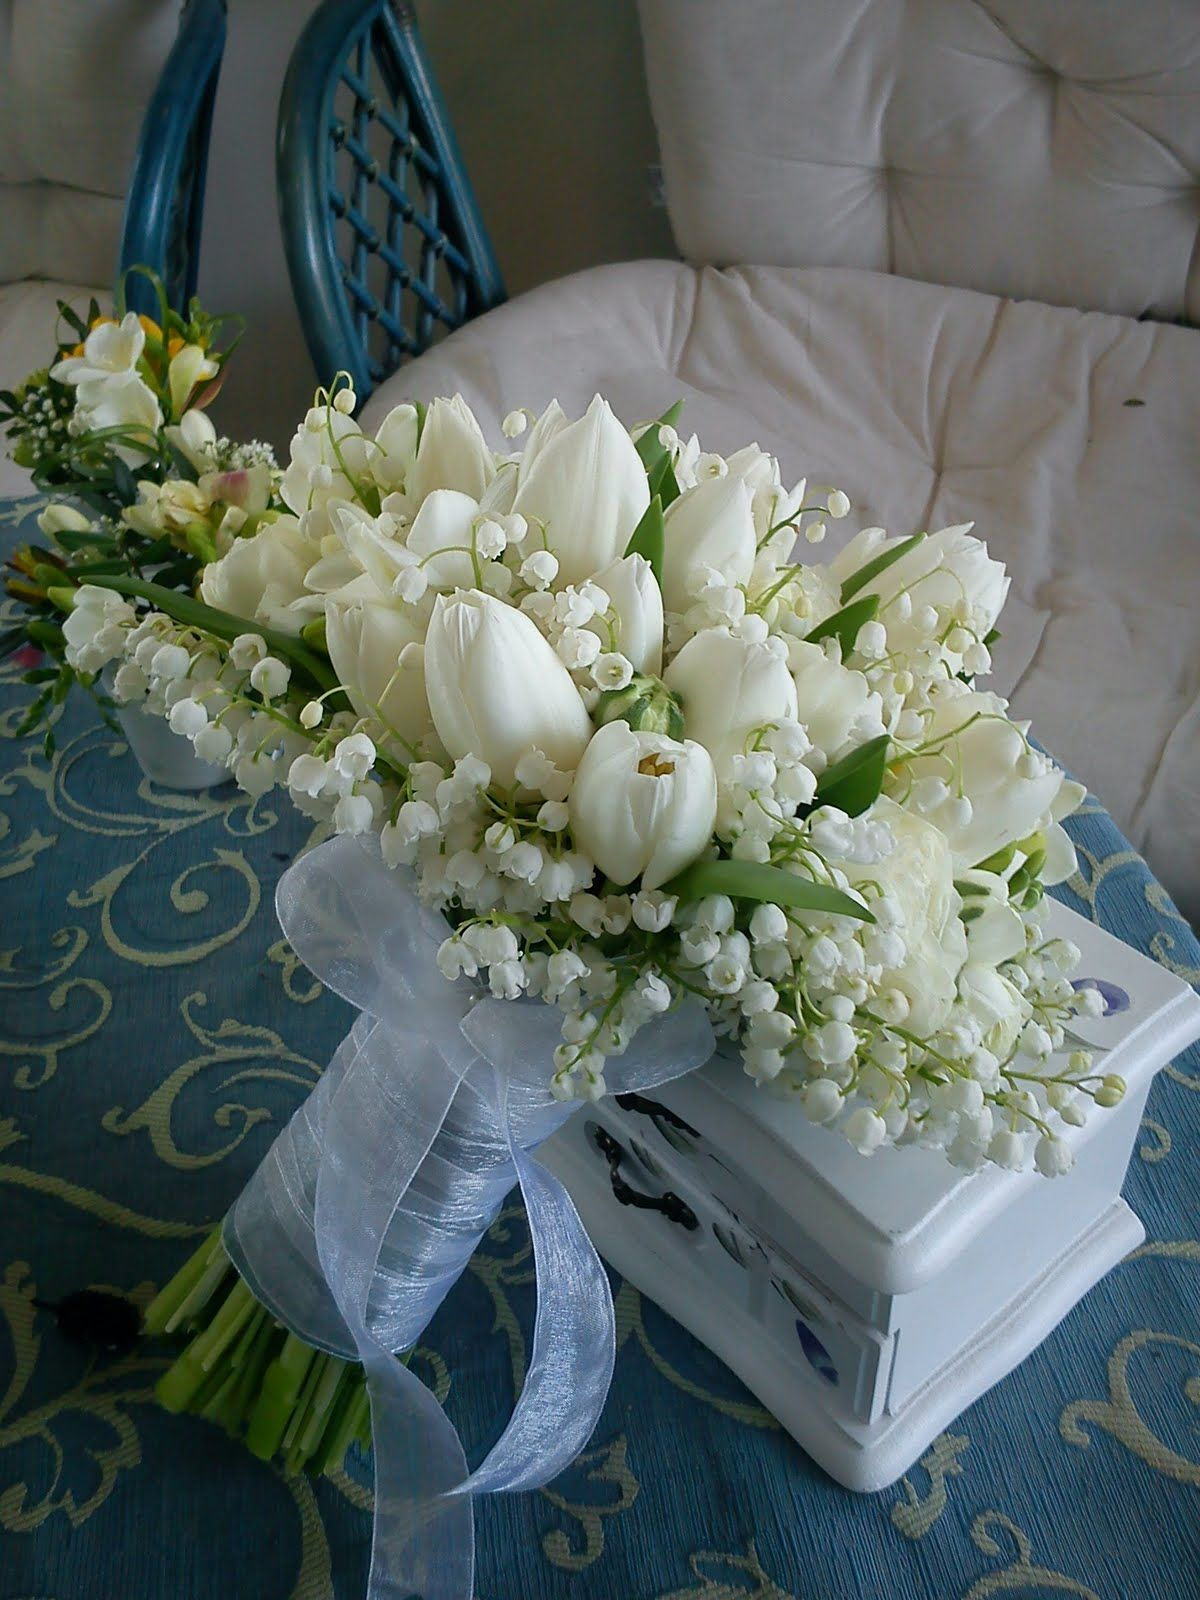 Most romantic and auspicious ever lily of the valley and